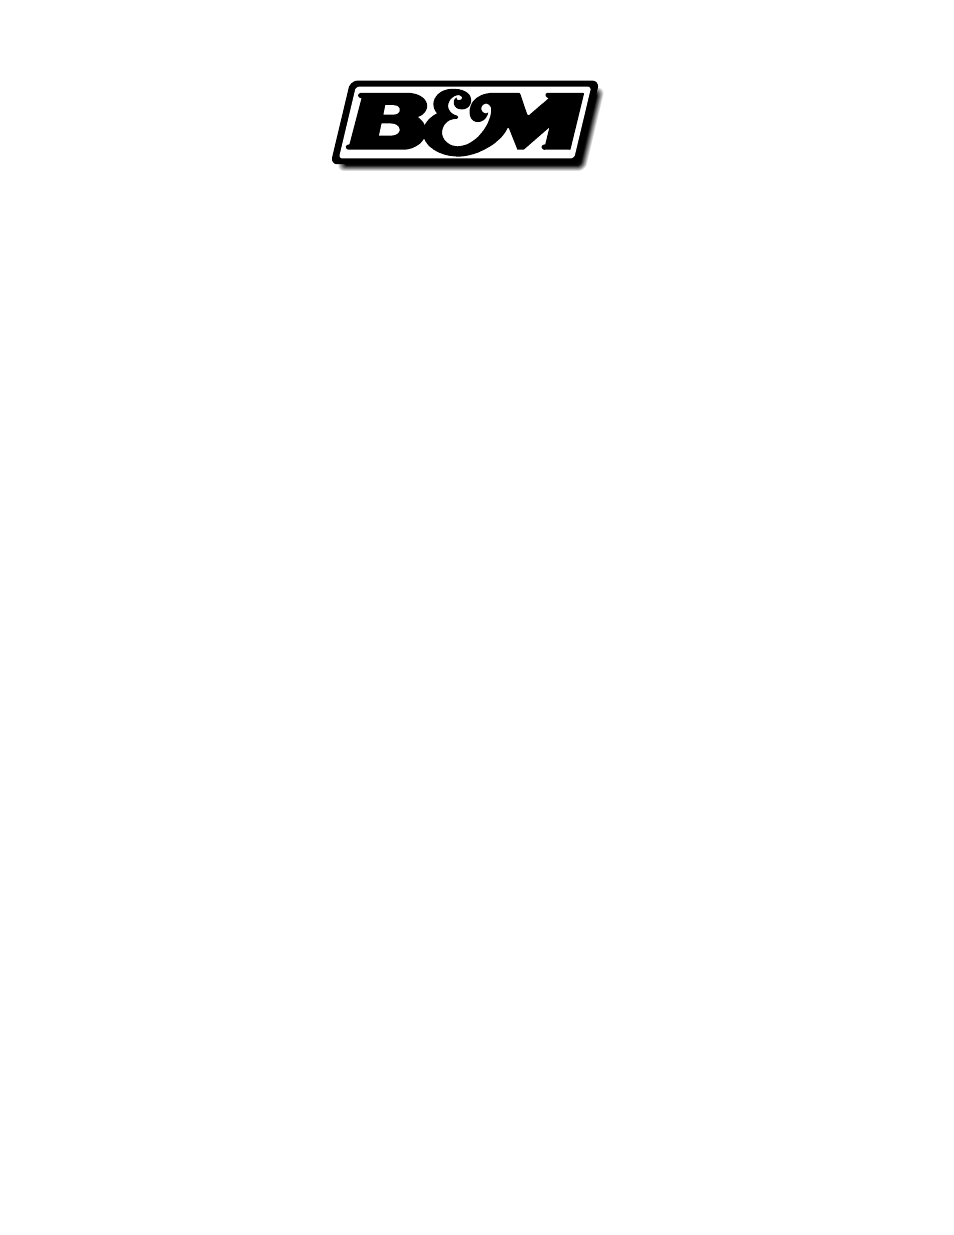 Bm 80841 Pro Ratchet Shifter User Manual 8 Pages Also For